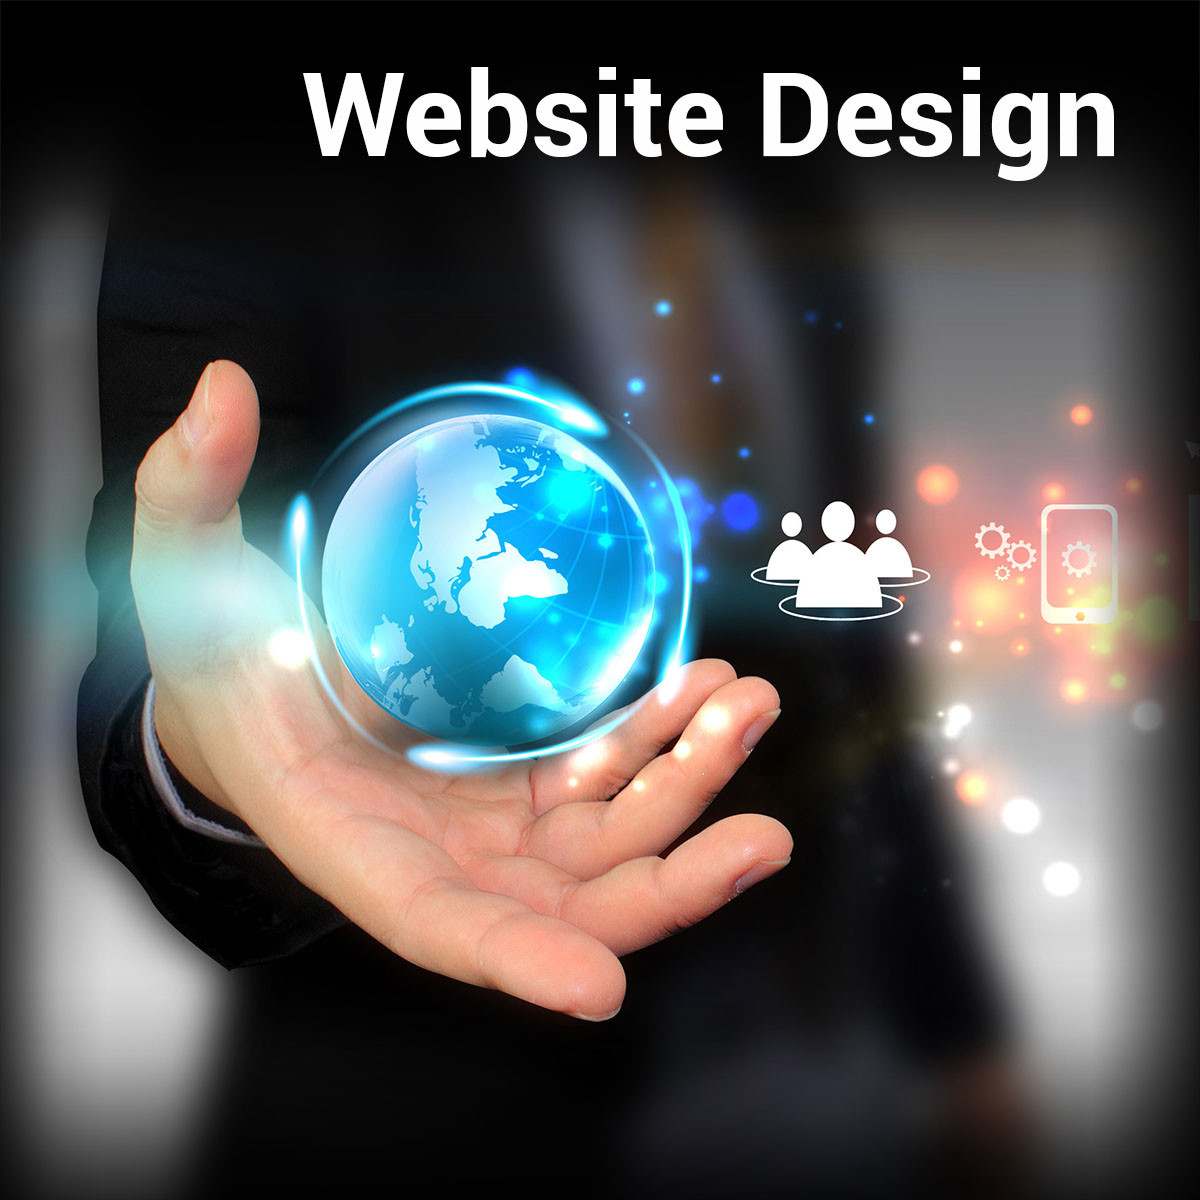 website design2